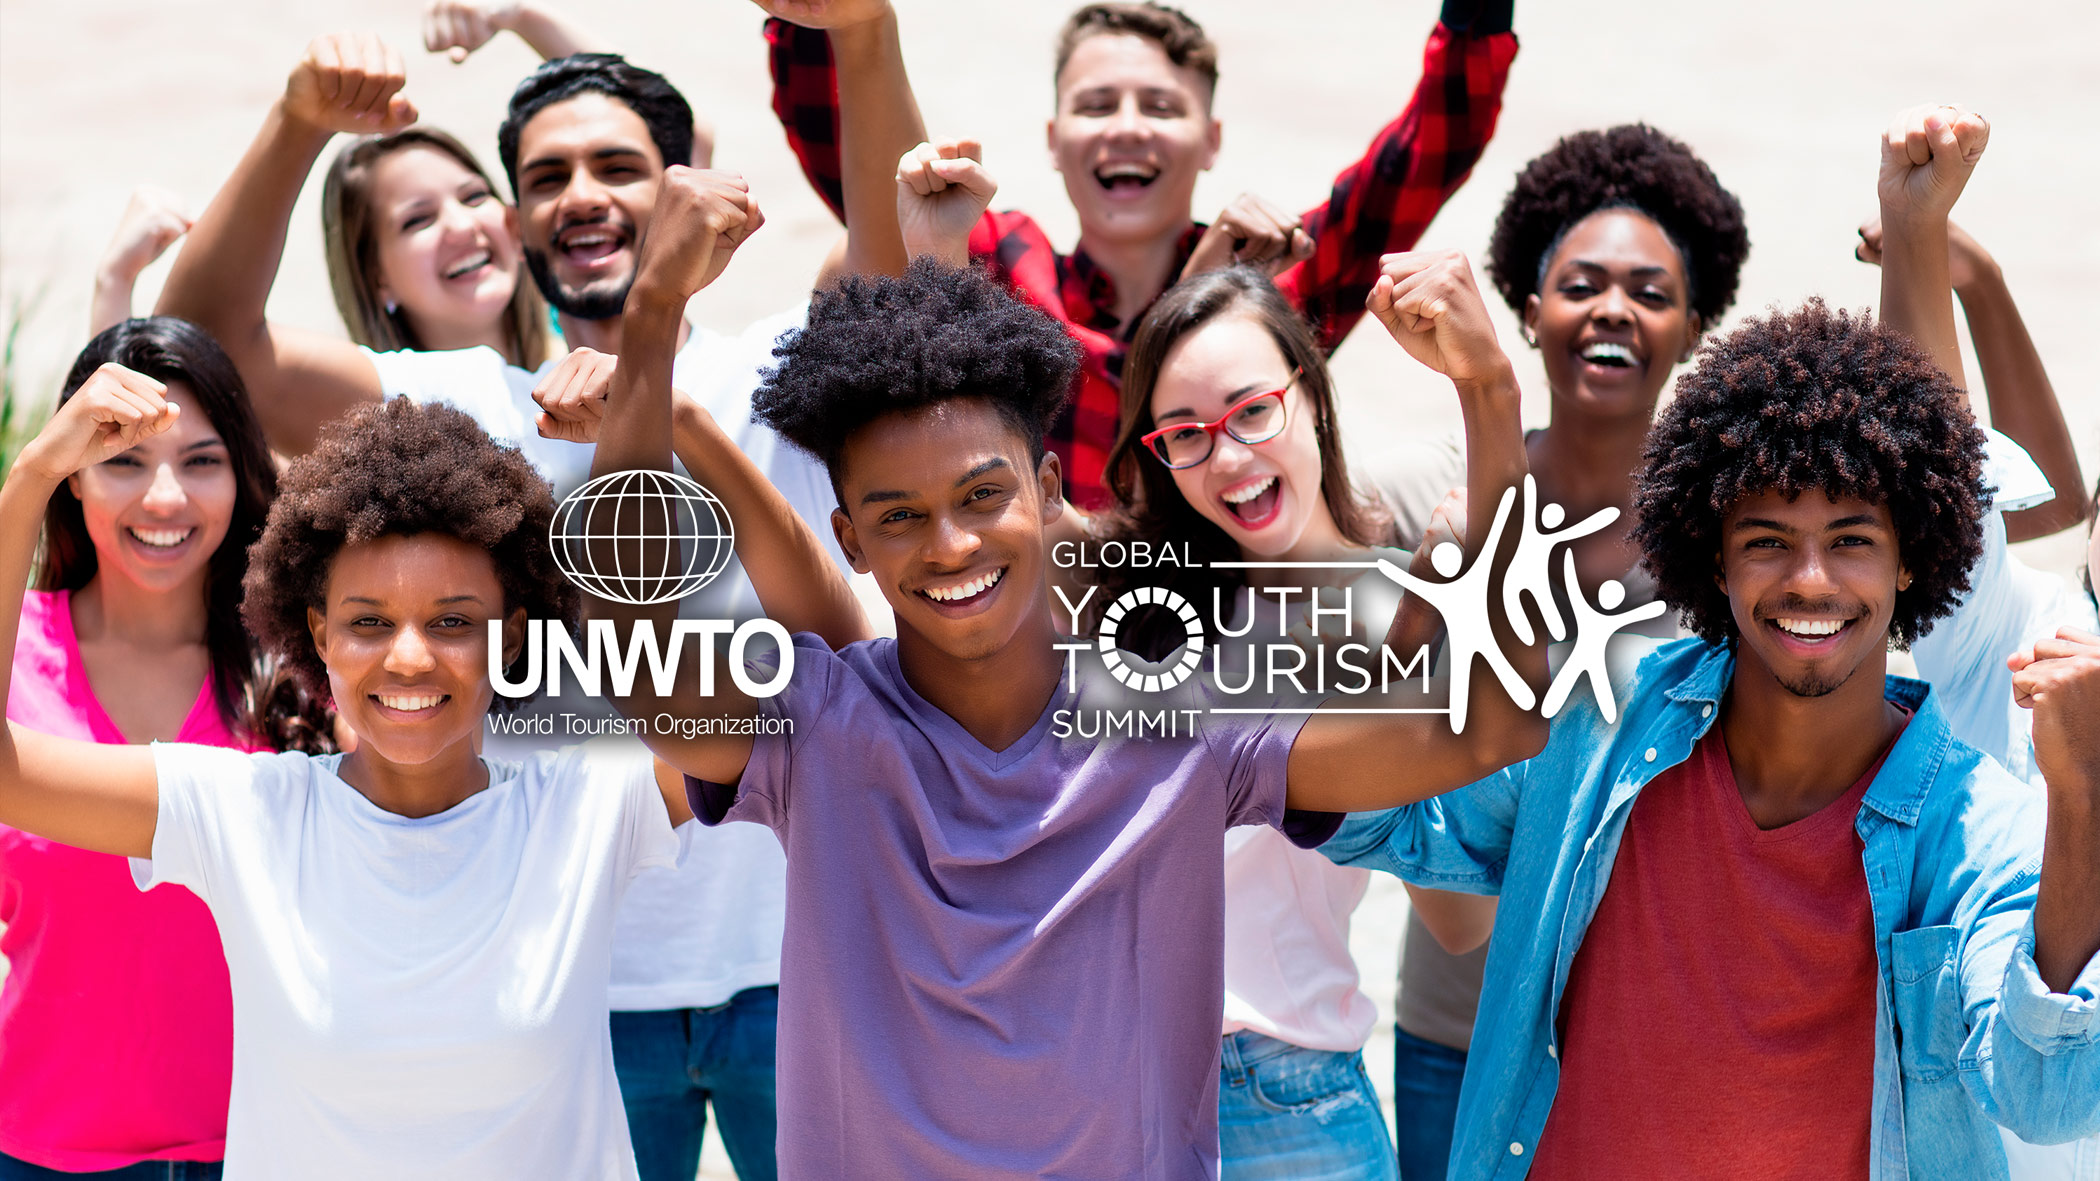 UNWTO organizes the 1st Global Youth Tourism Summit in Italy